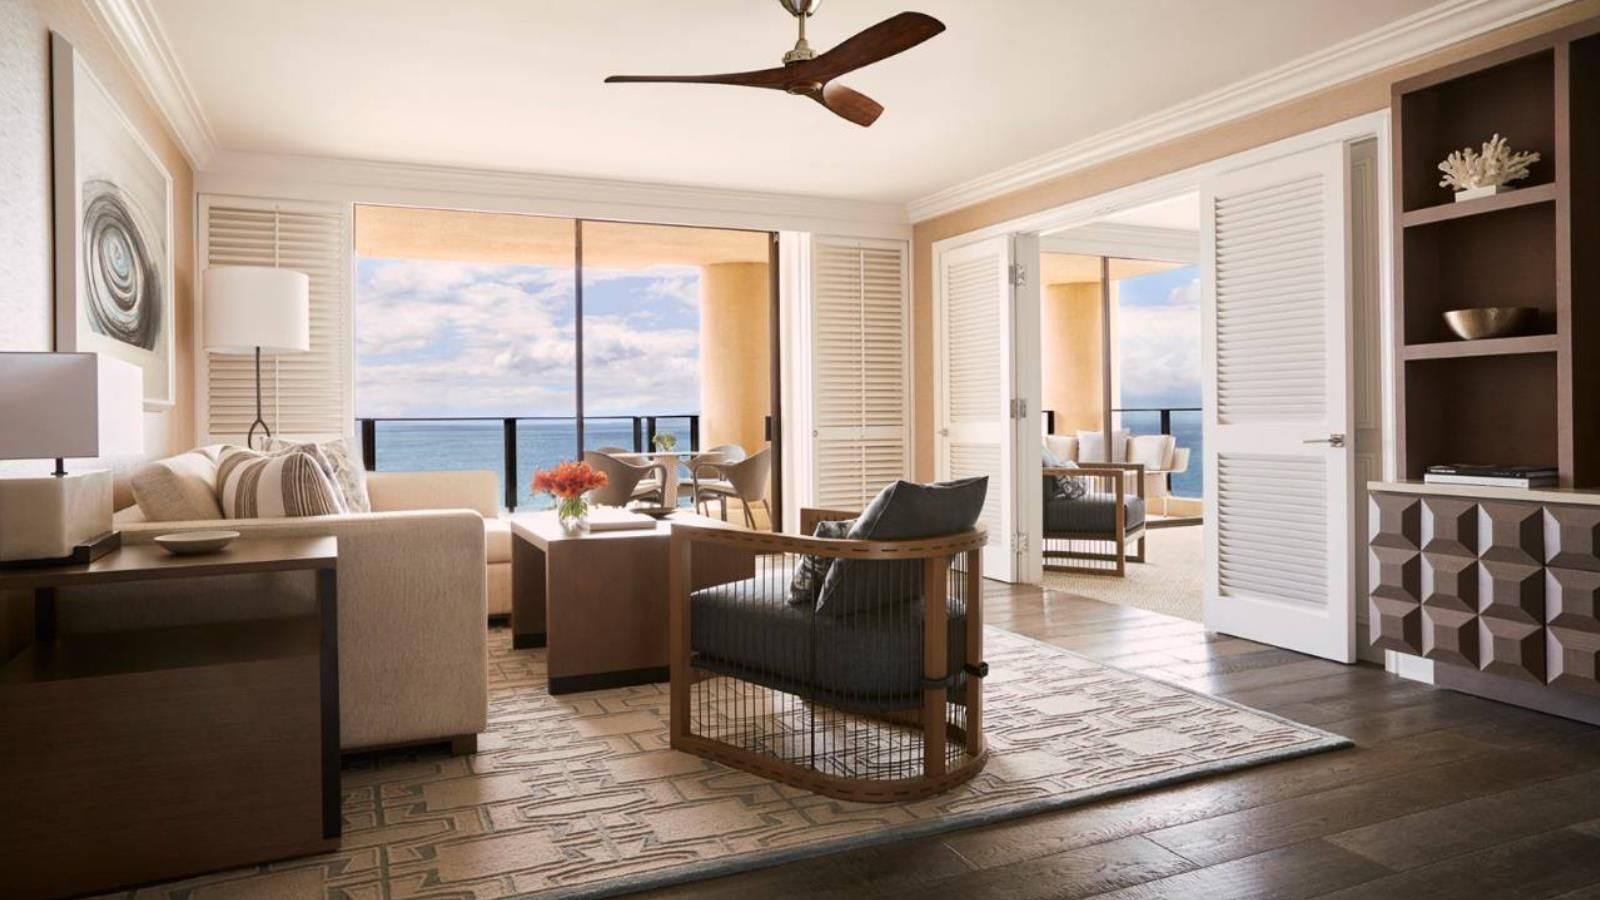 Four Seasons Maui Hawaii With Images Hotel Interior Design